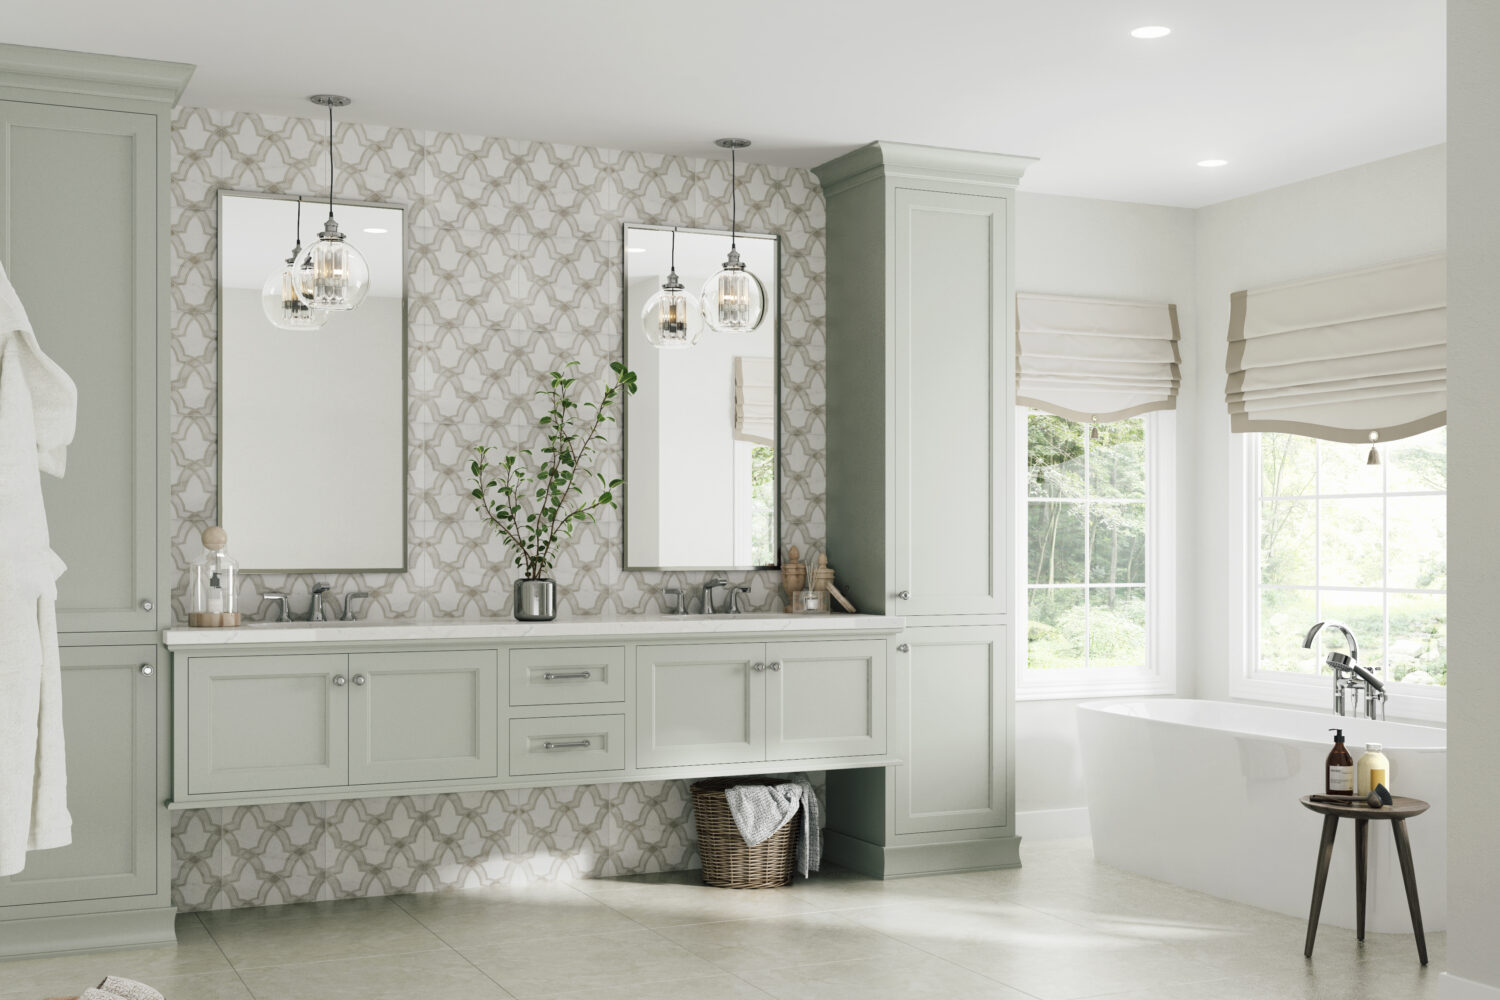 """Dura Supreme vanity shown in the Meridien-Inset door style with a Personal Paint Match finish to """"Silver Strand"""" (2019-2020 Curated Color) by Sherwin-Williams."""